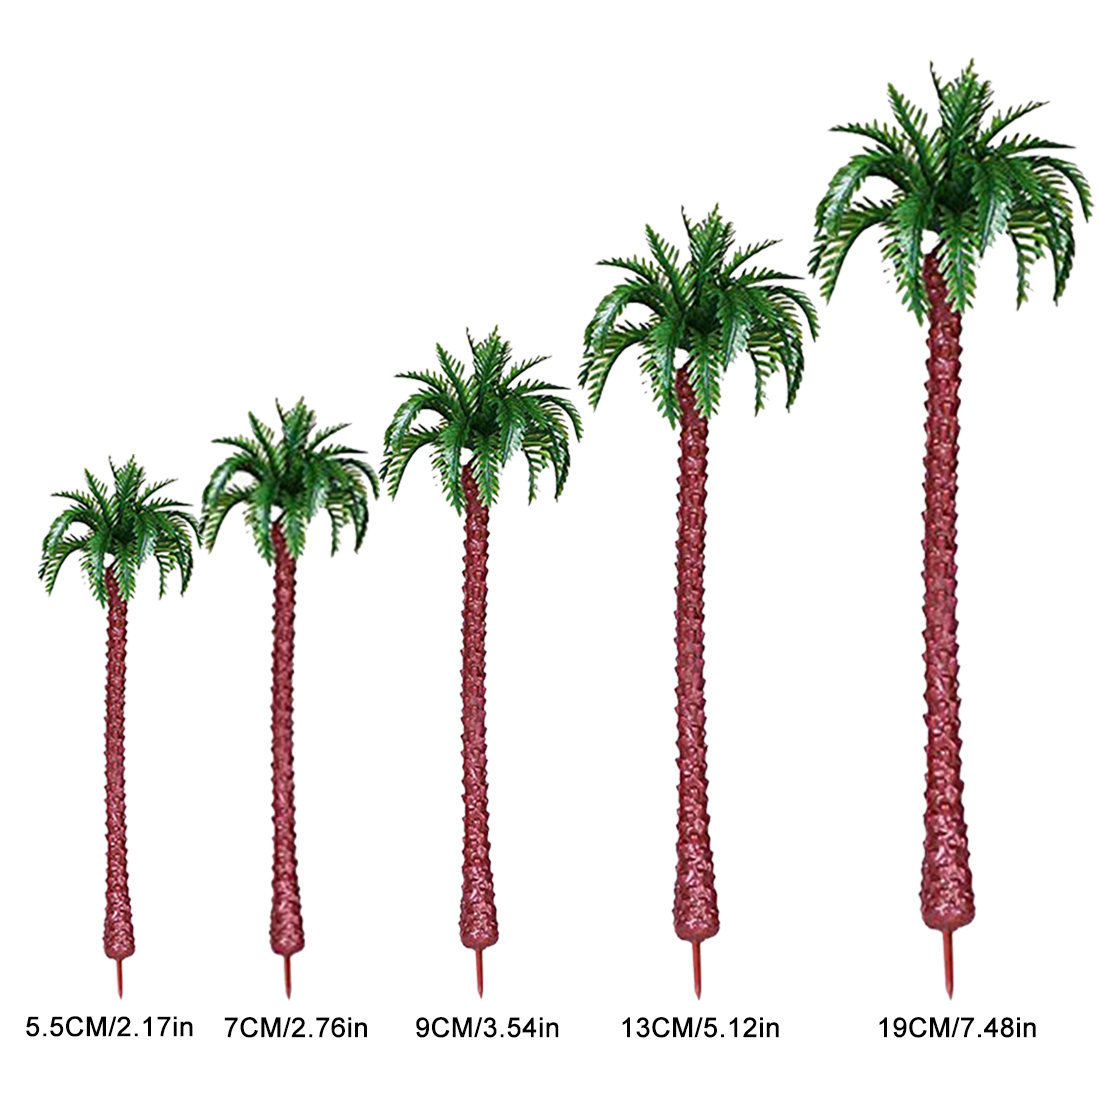 5.5/7/9/13/19cm Plastic Coconut Palm Tree Train Railroad Architecture Diorama Tree Model Building Kit